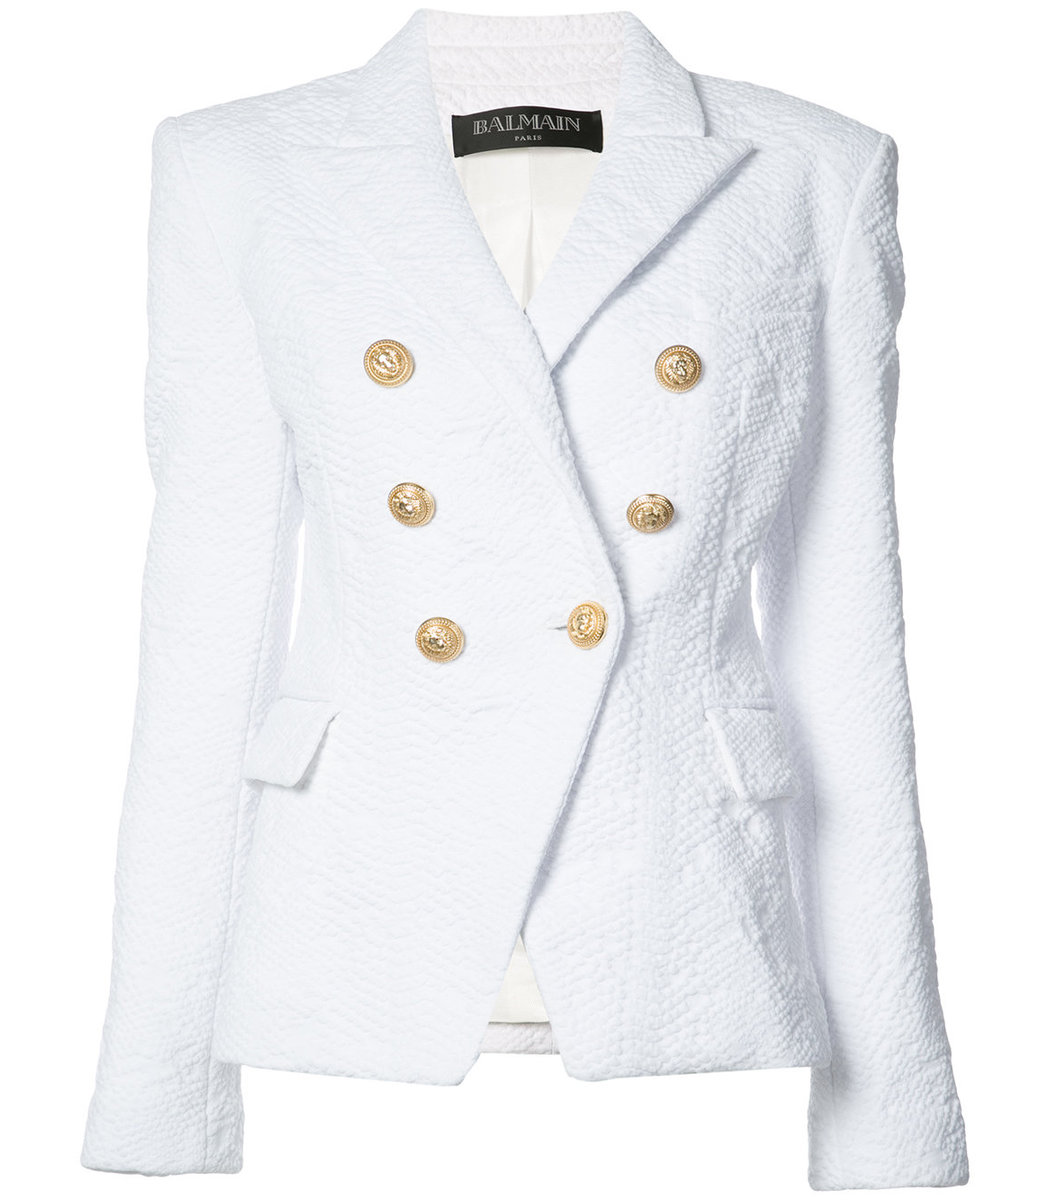 Balmain Double Breasted Blazer | Balmain Leather Jacket Womens | Balmain Winter Jacket